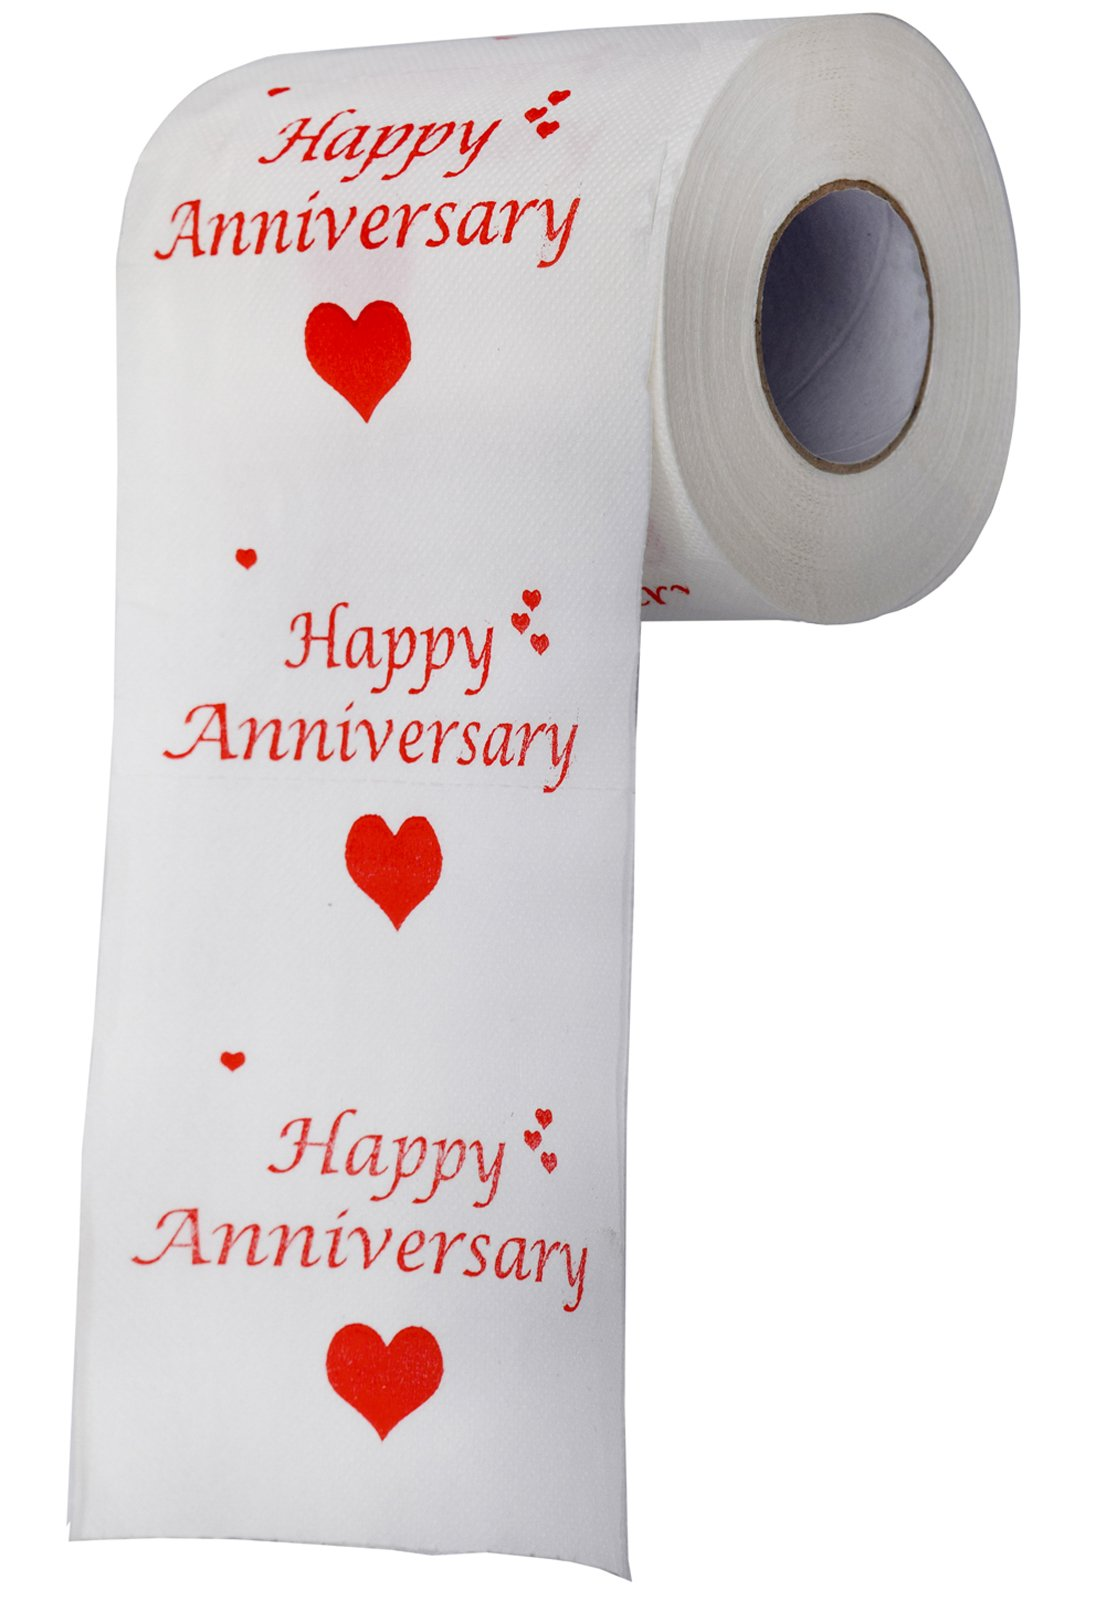 Happy Anniversary Toilet Paper by InsaneChicken